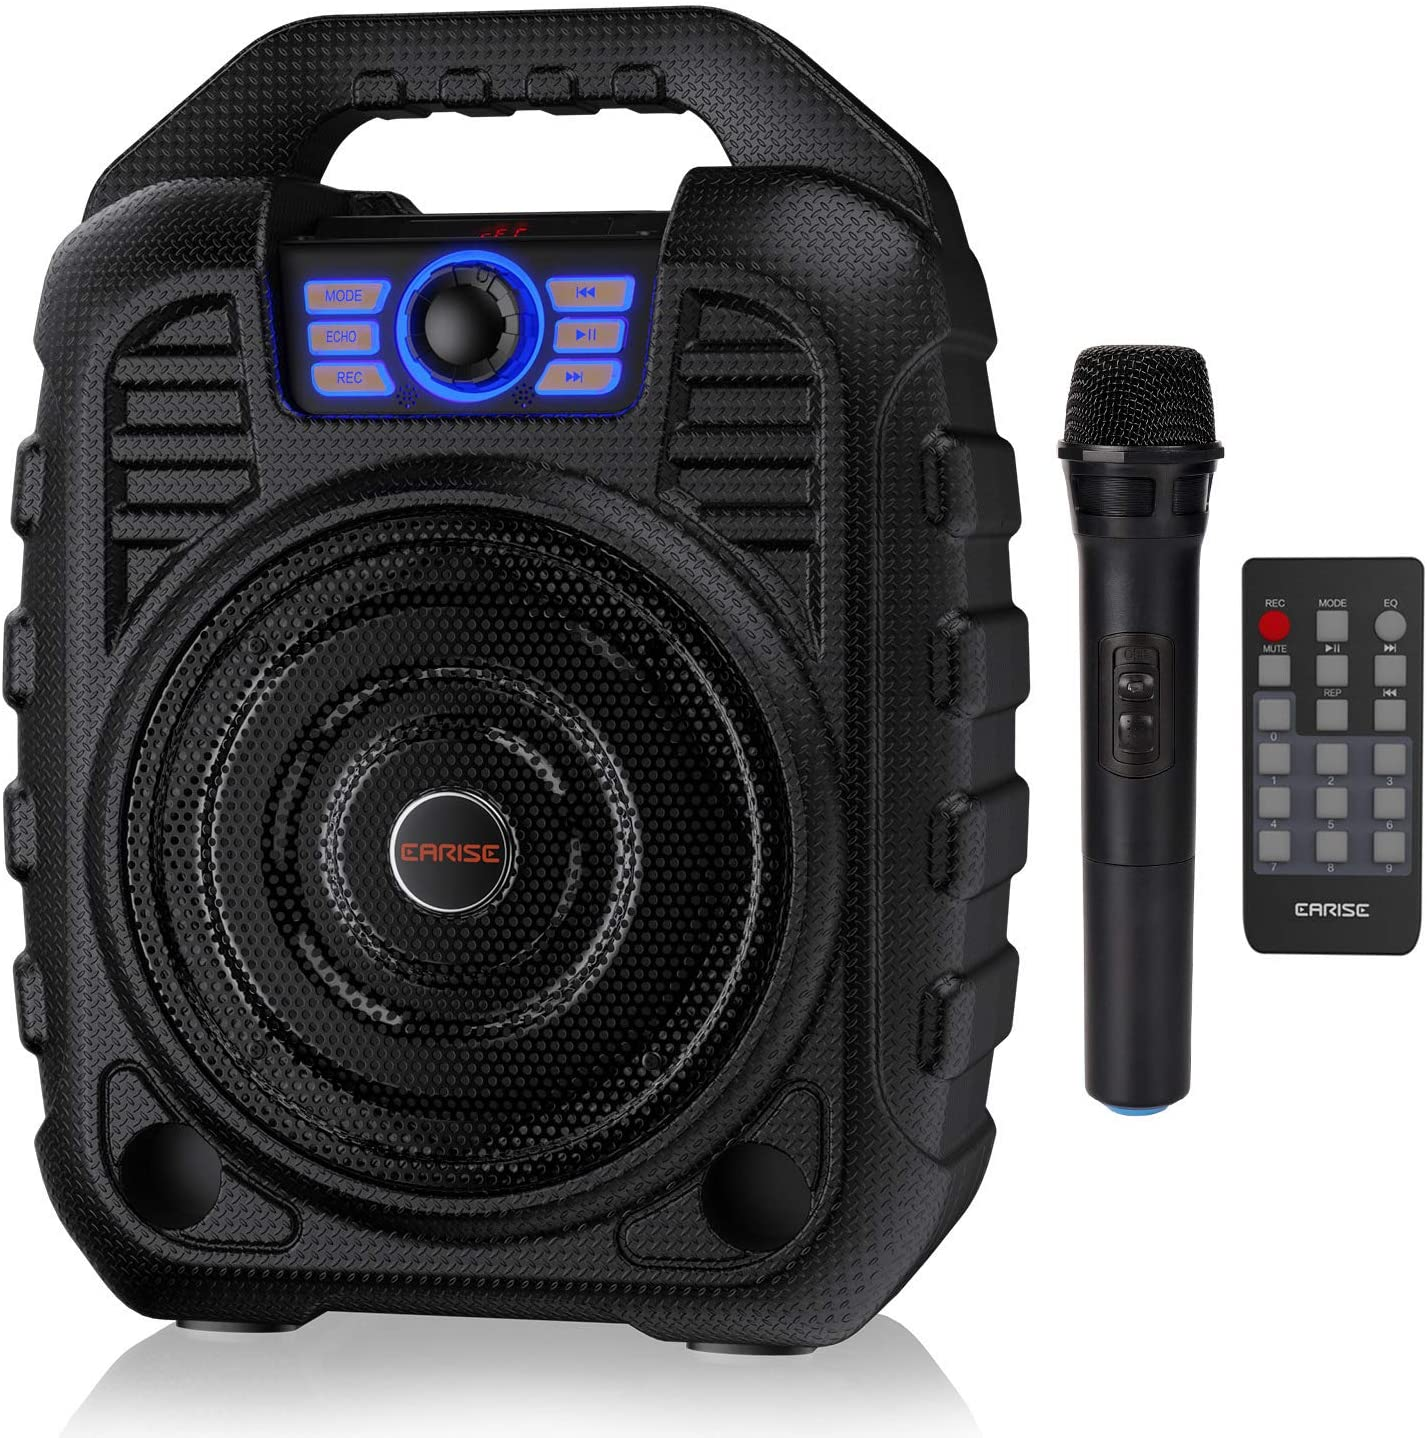 EARISE T26 Portable Karaoke Machine Bluetooth Speaker with Wireless Microphone, Rechargeable PA System with FM Radio, Audio Recording, Remote Control, Supports TF Card/USB, Perfect for Party: Musical Instruments